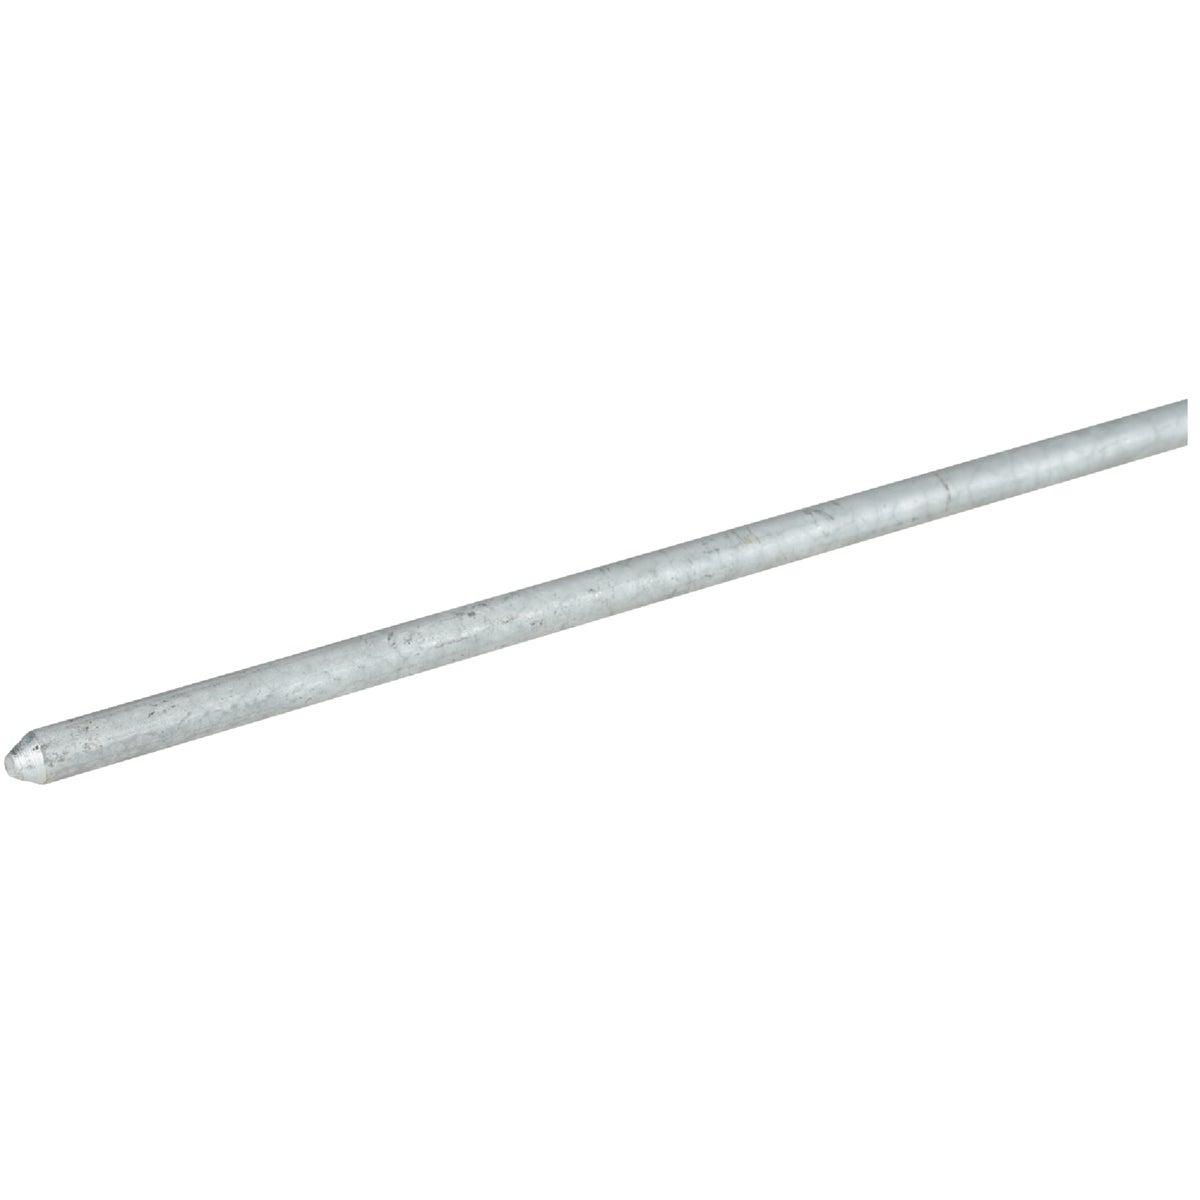 "5/8""X8' GROUND ROD"